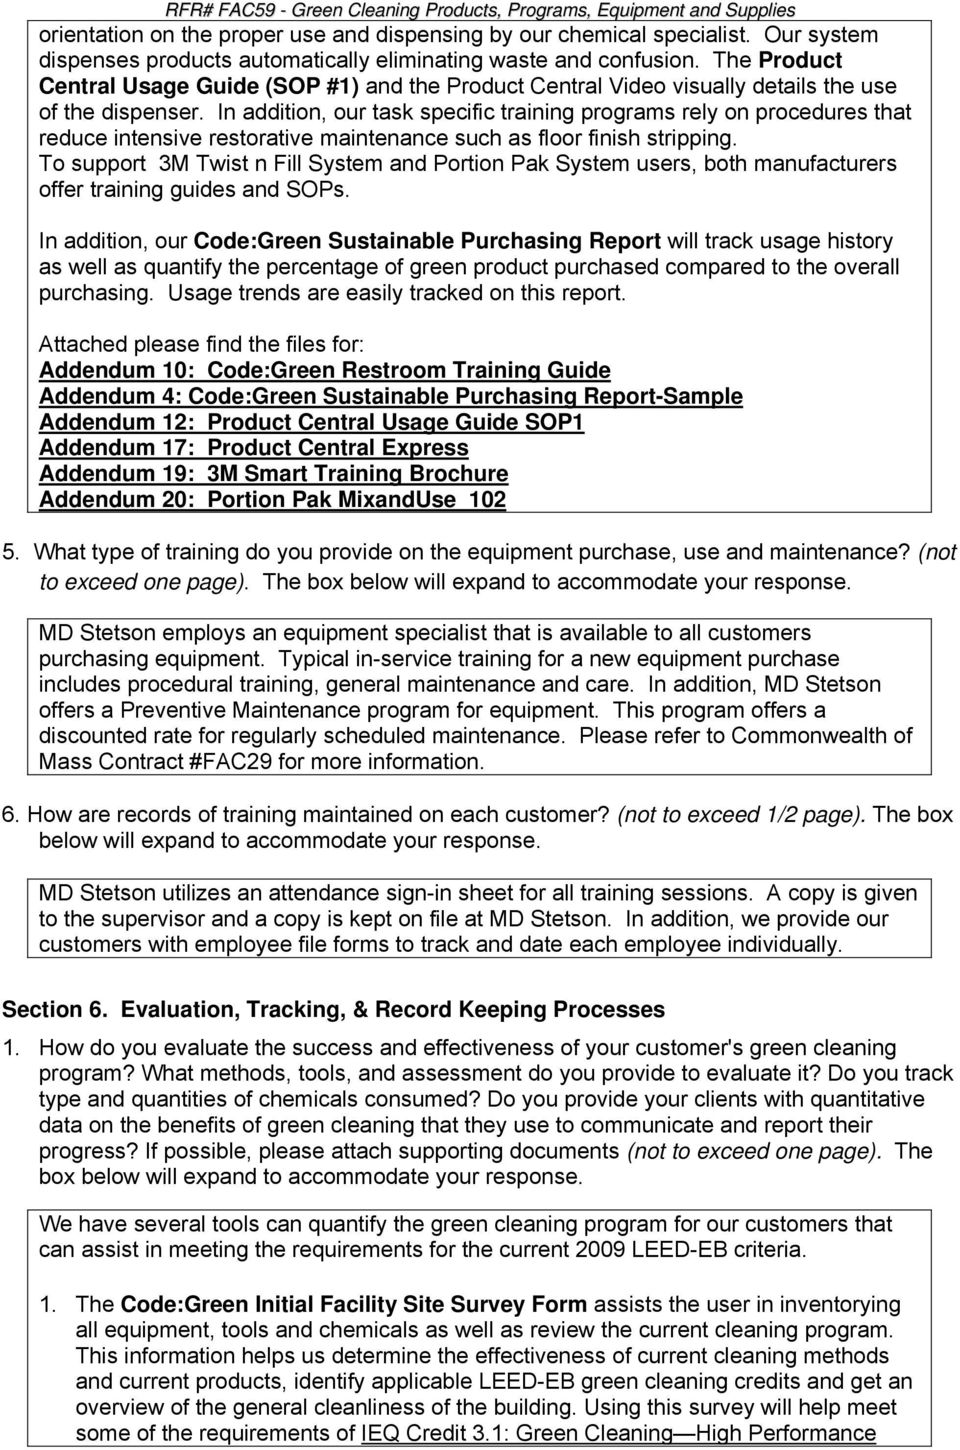 Green Cleaning Program Support Form Pdf